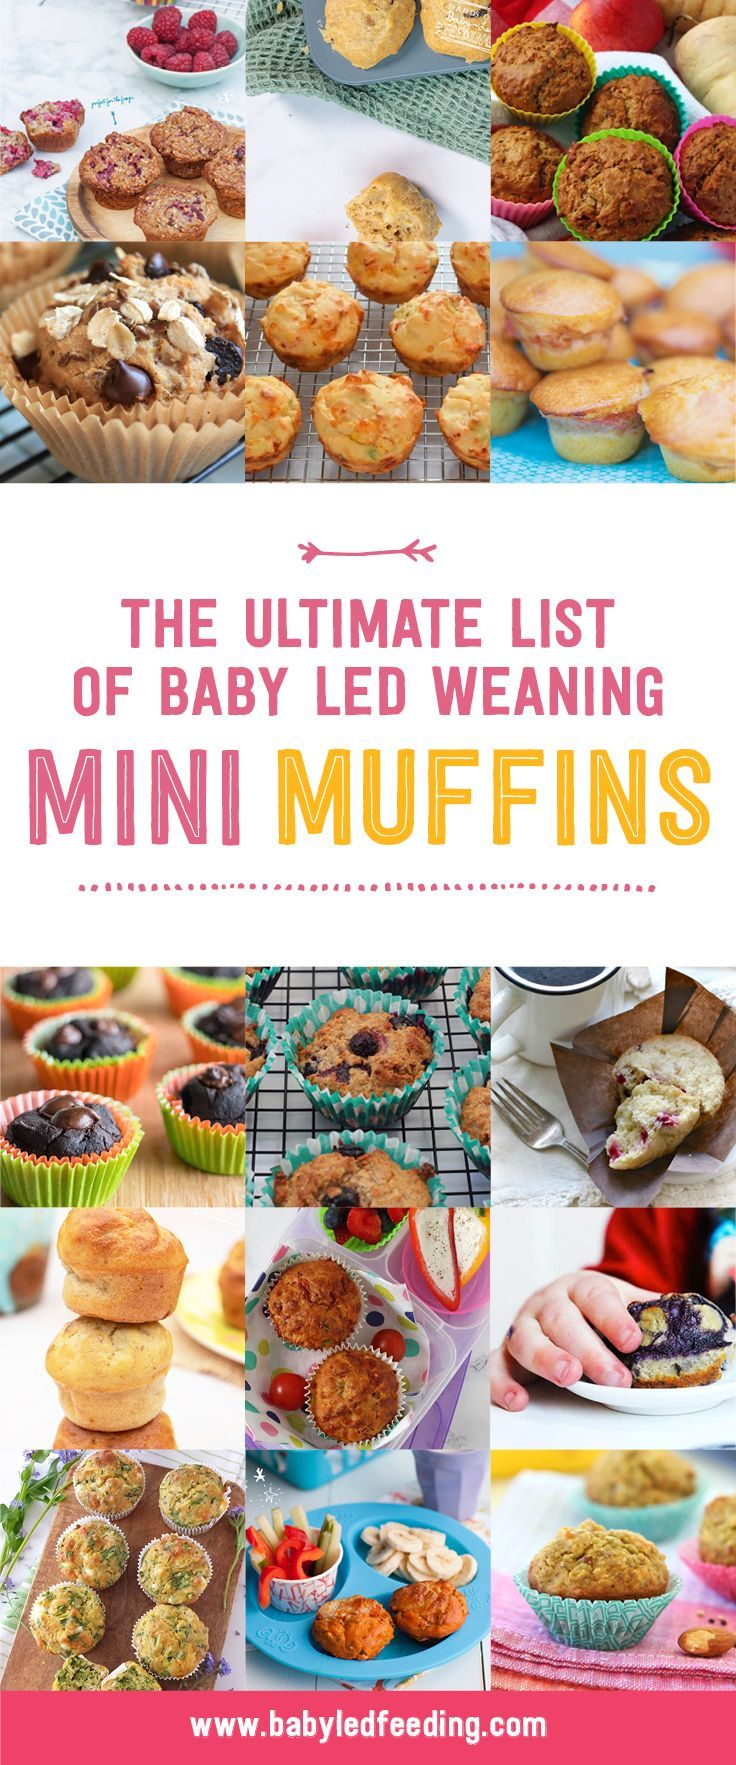 Photo of Ultimate list of Mini Muffins! 25+ Healthy muffin recipes